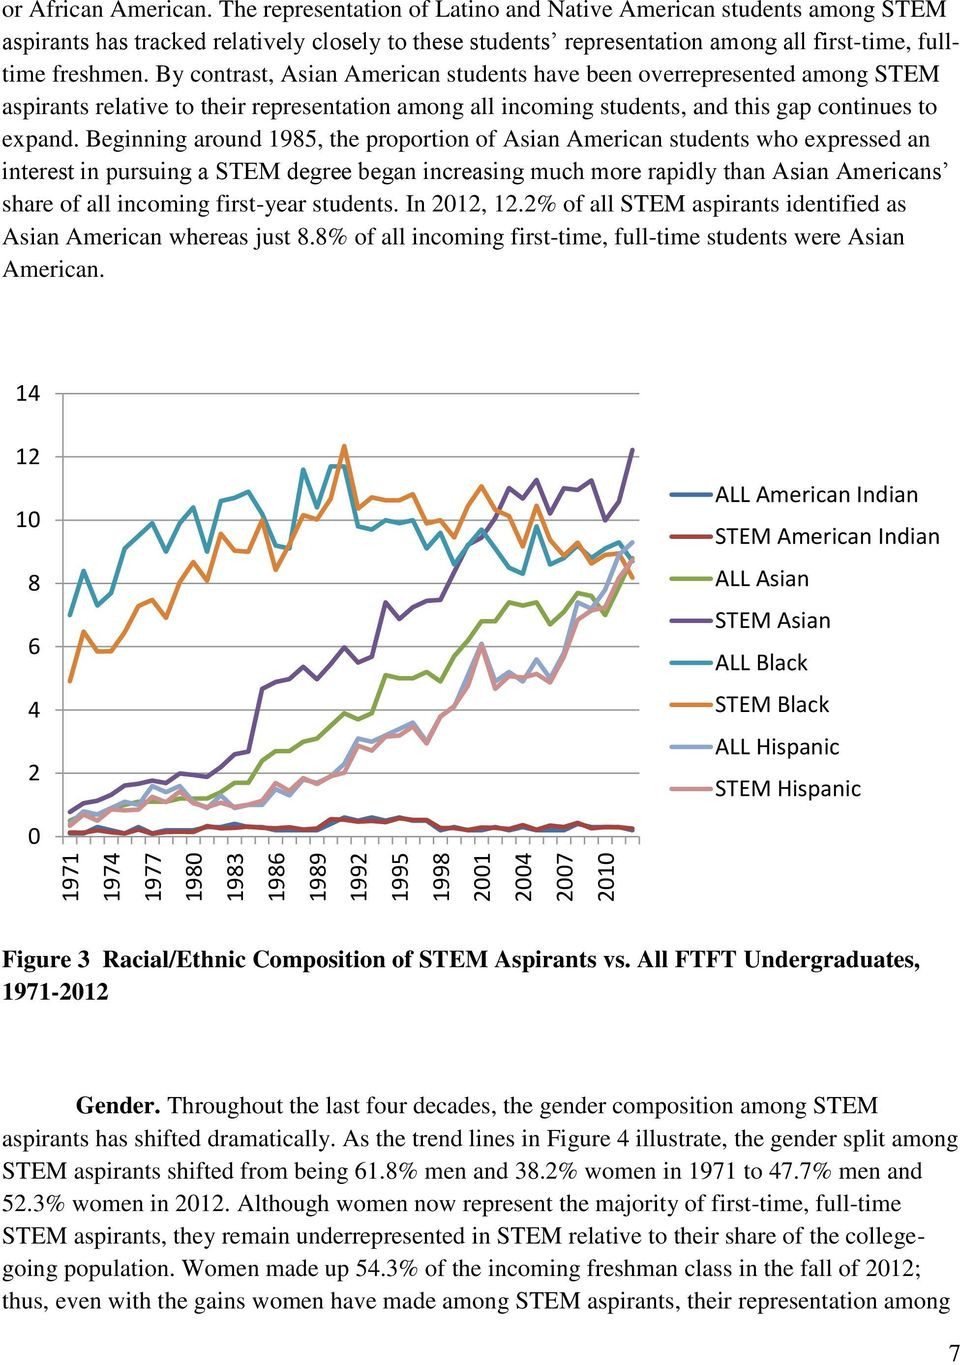 By contrast, Asian American students have been overrepresented among STEM aspirants relative to their representation among all incoming students, and this gap continues to expand.